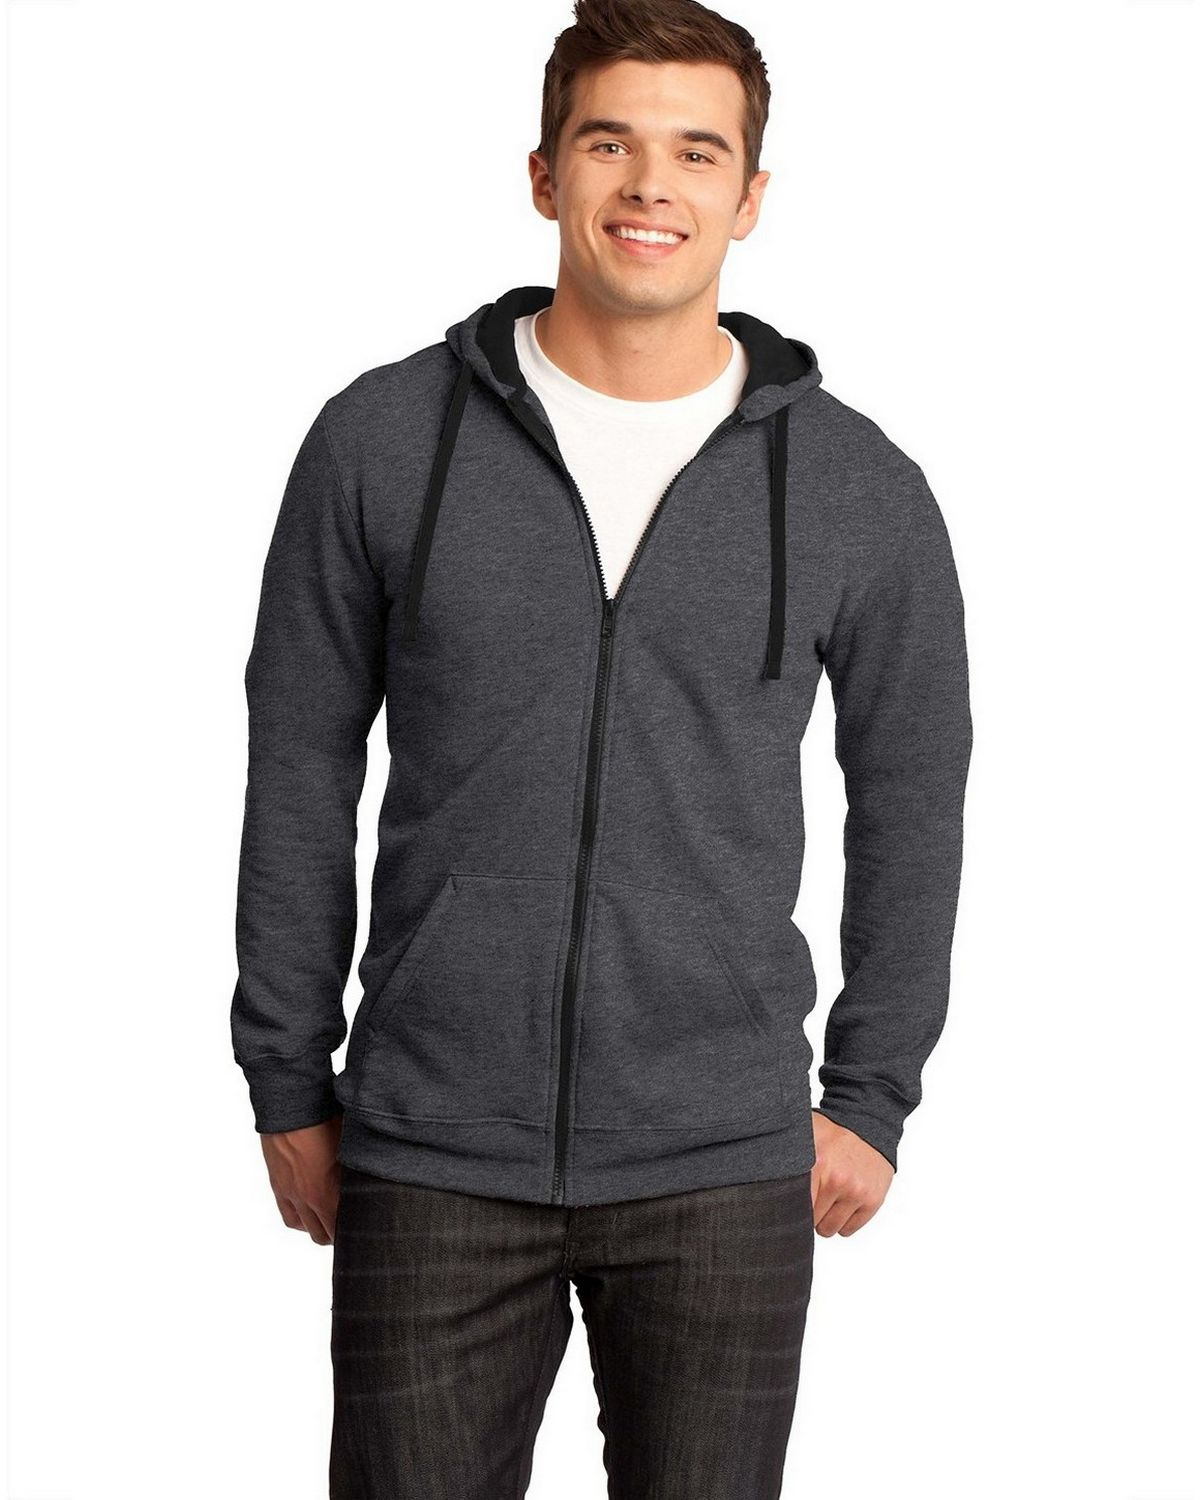 District DT800 Young Mens The Concert Fleece Hoodie - Heathered Charcoal - XL DT800